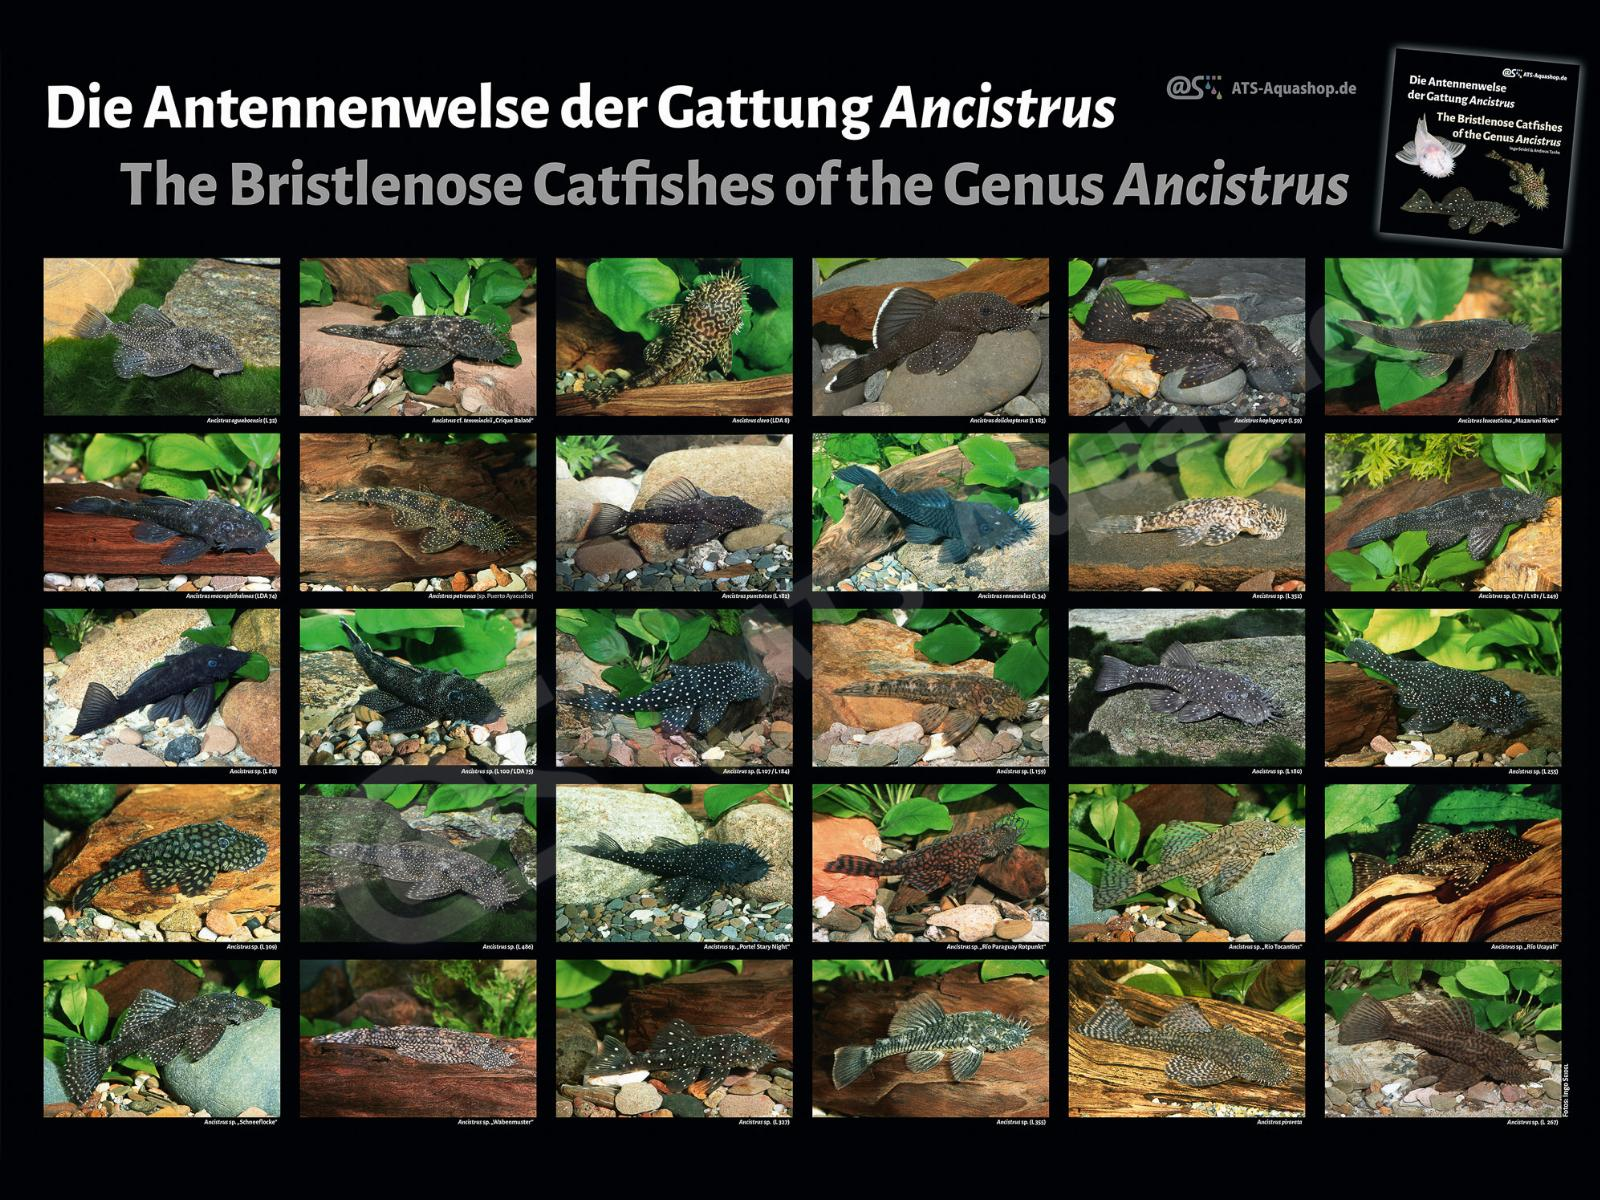 Posters: The Bristlenose Catfishes of the Ancistrus